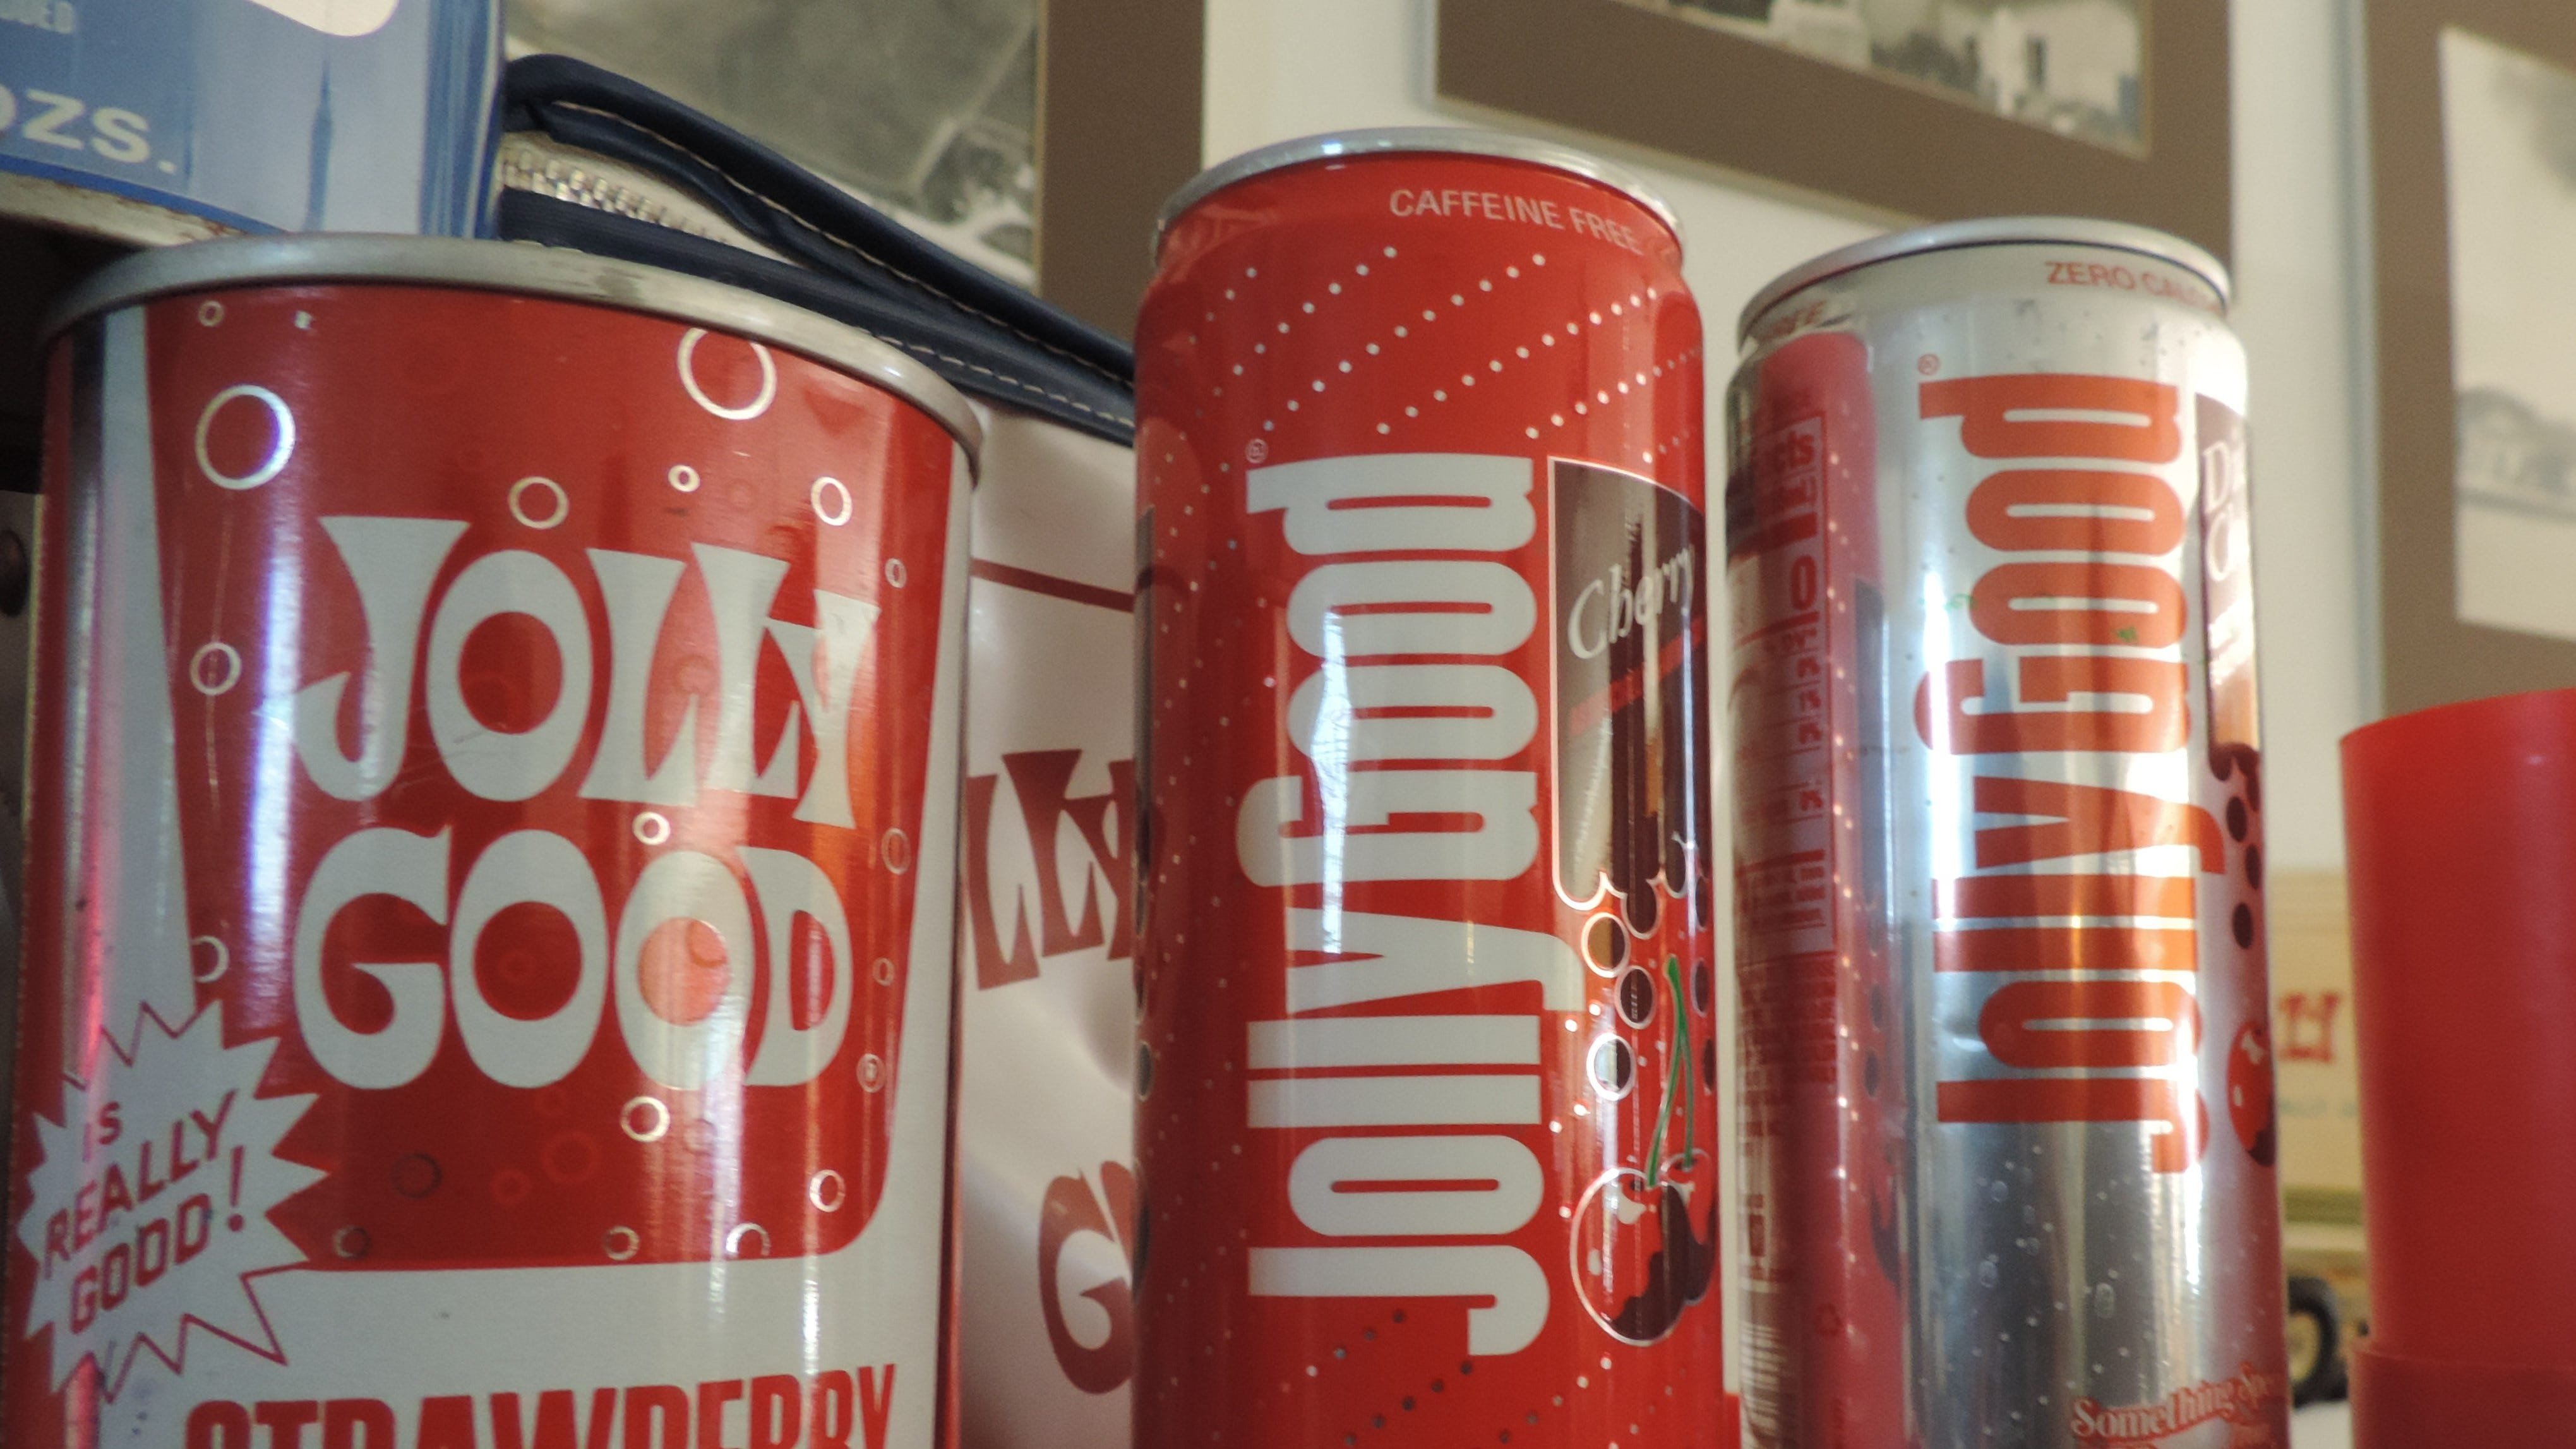 Jolly Good Soda was dead. Then a family legacy brought the Wisconsin-made drink back.